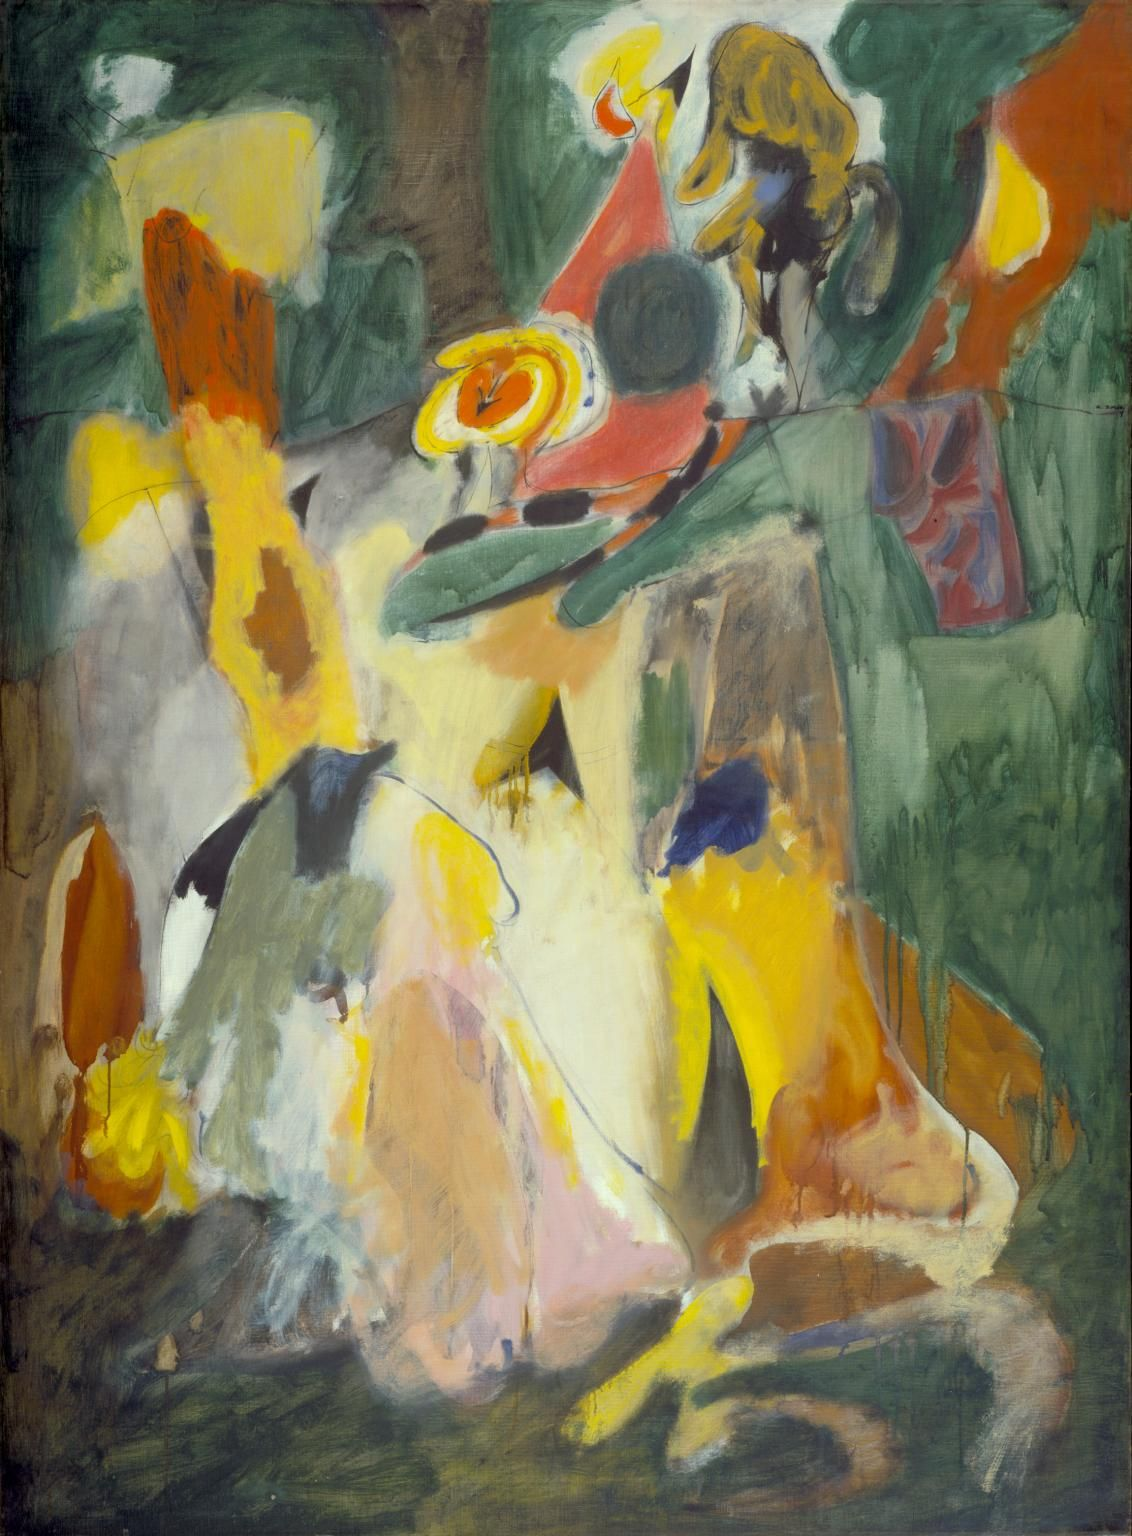 Abstract expressionism arshile gorky 39 waterfall 39 1943 for Abstract impressionism definition